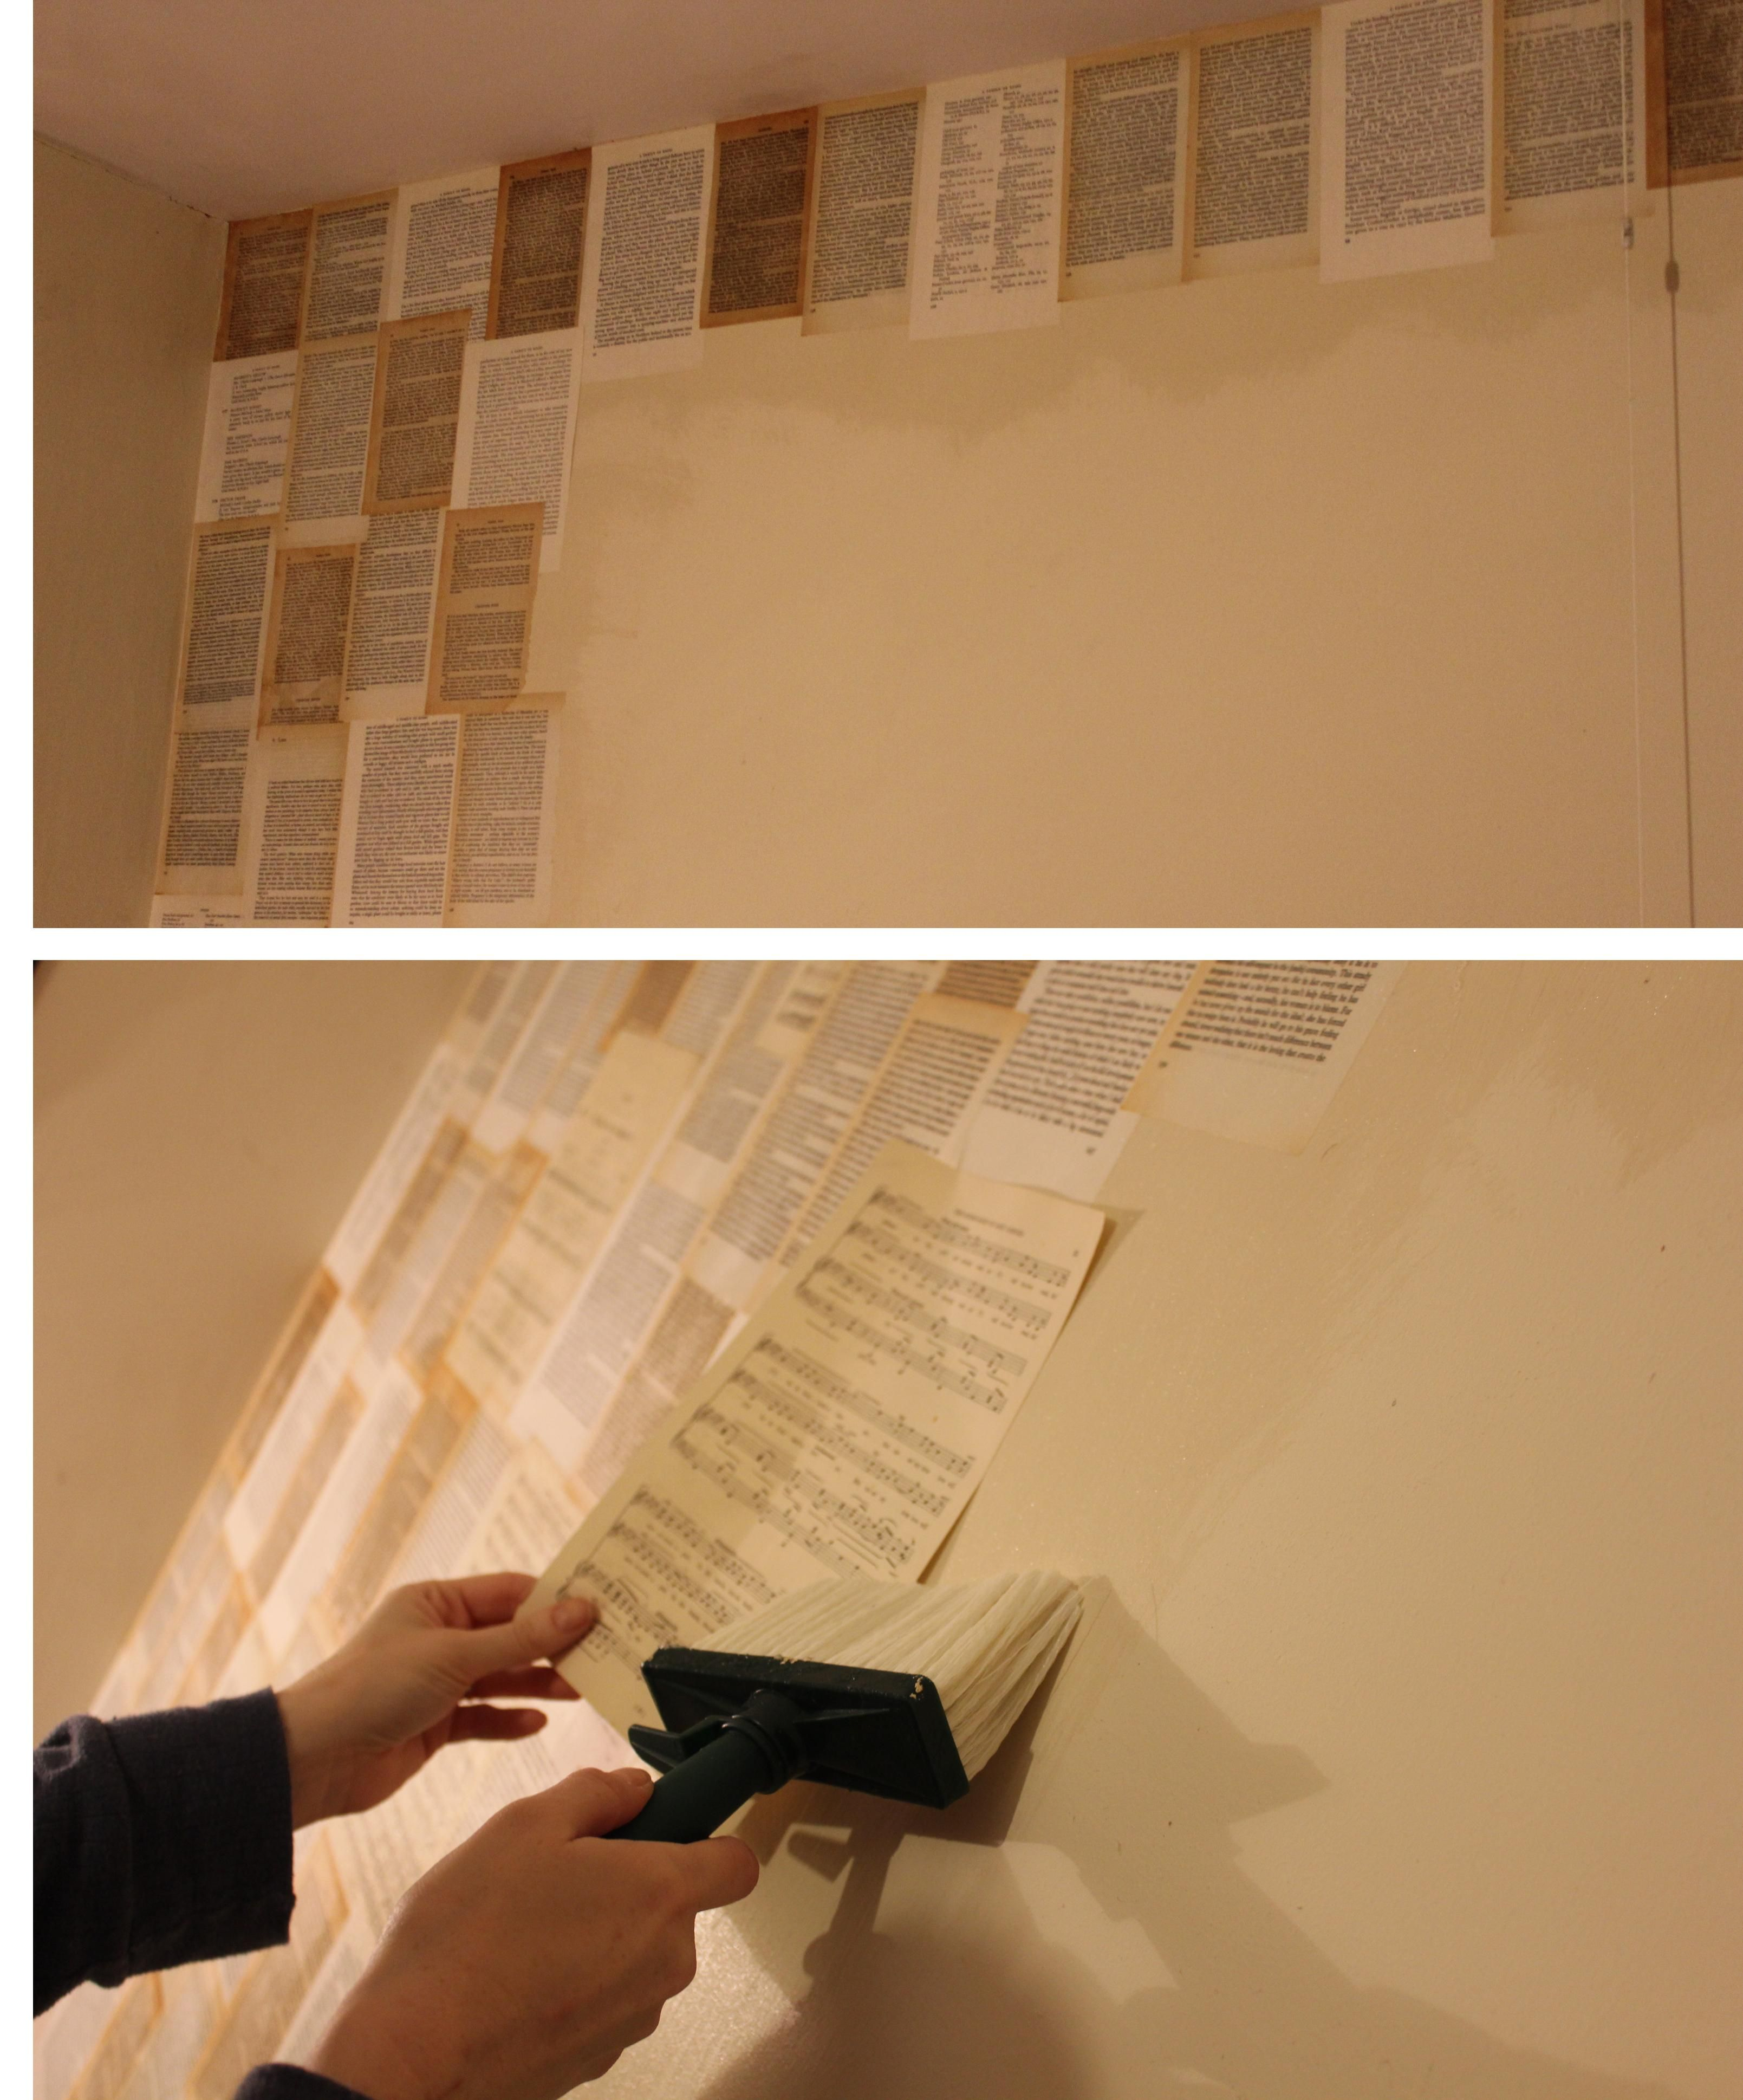 diy book pages and sheet music wallpaper to decorate bedroom apartment stuff pinterest. Black Bedroom Furniture Sets. Home Design Ideas